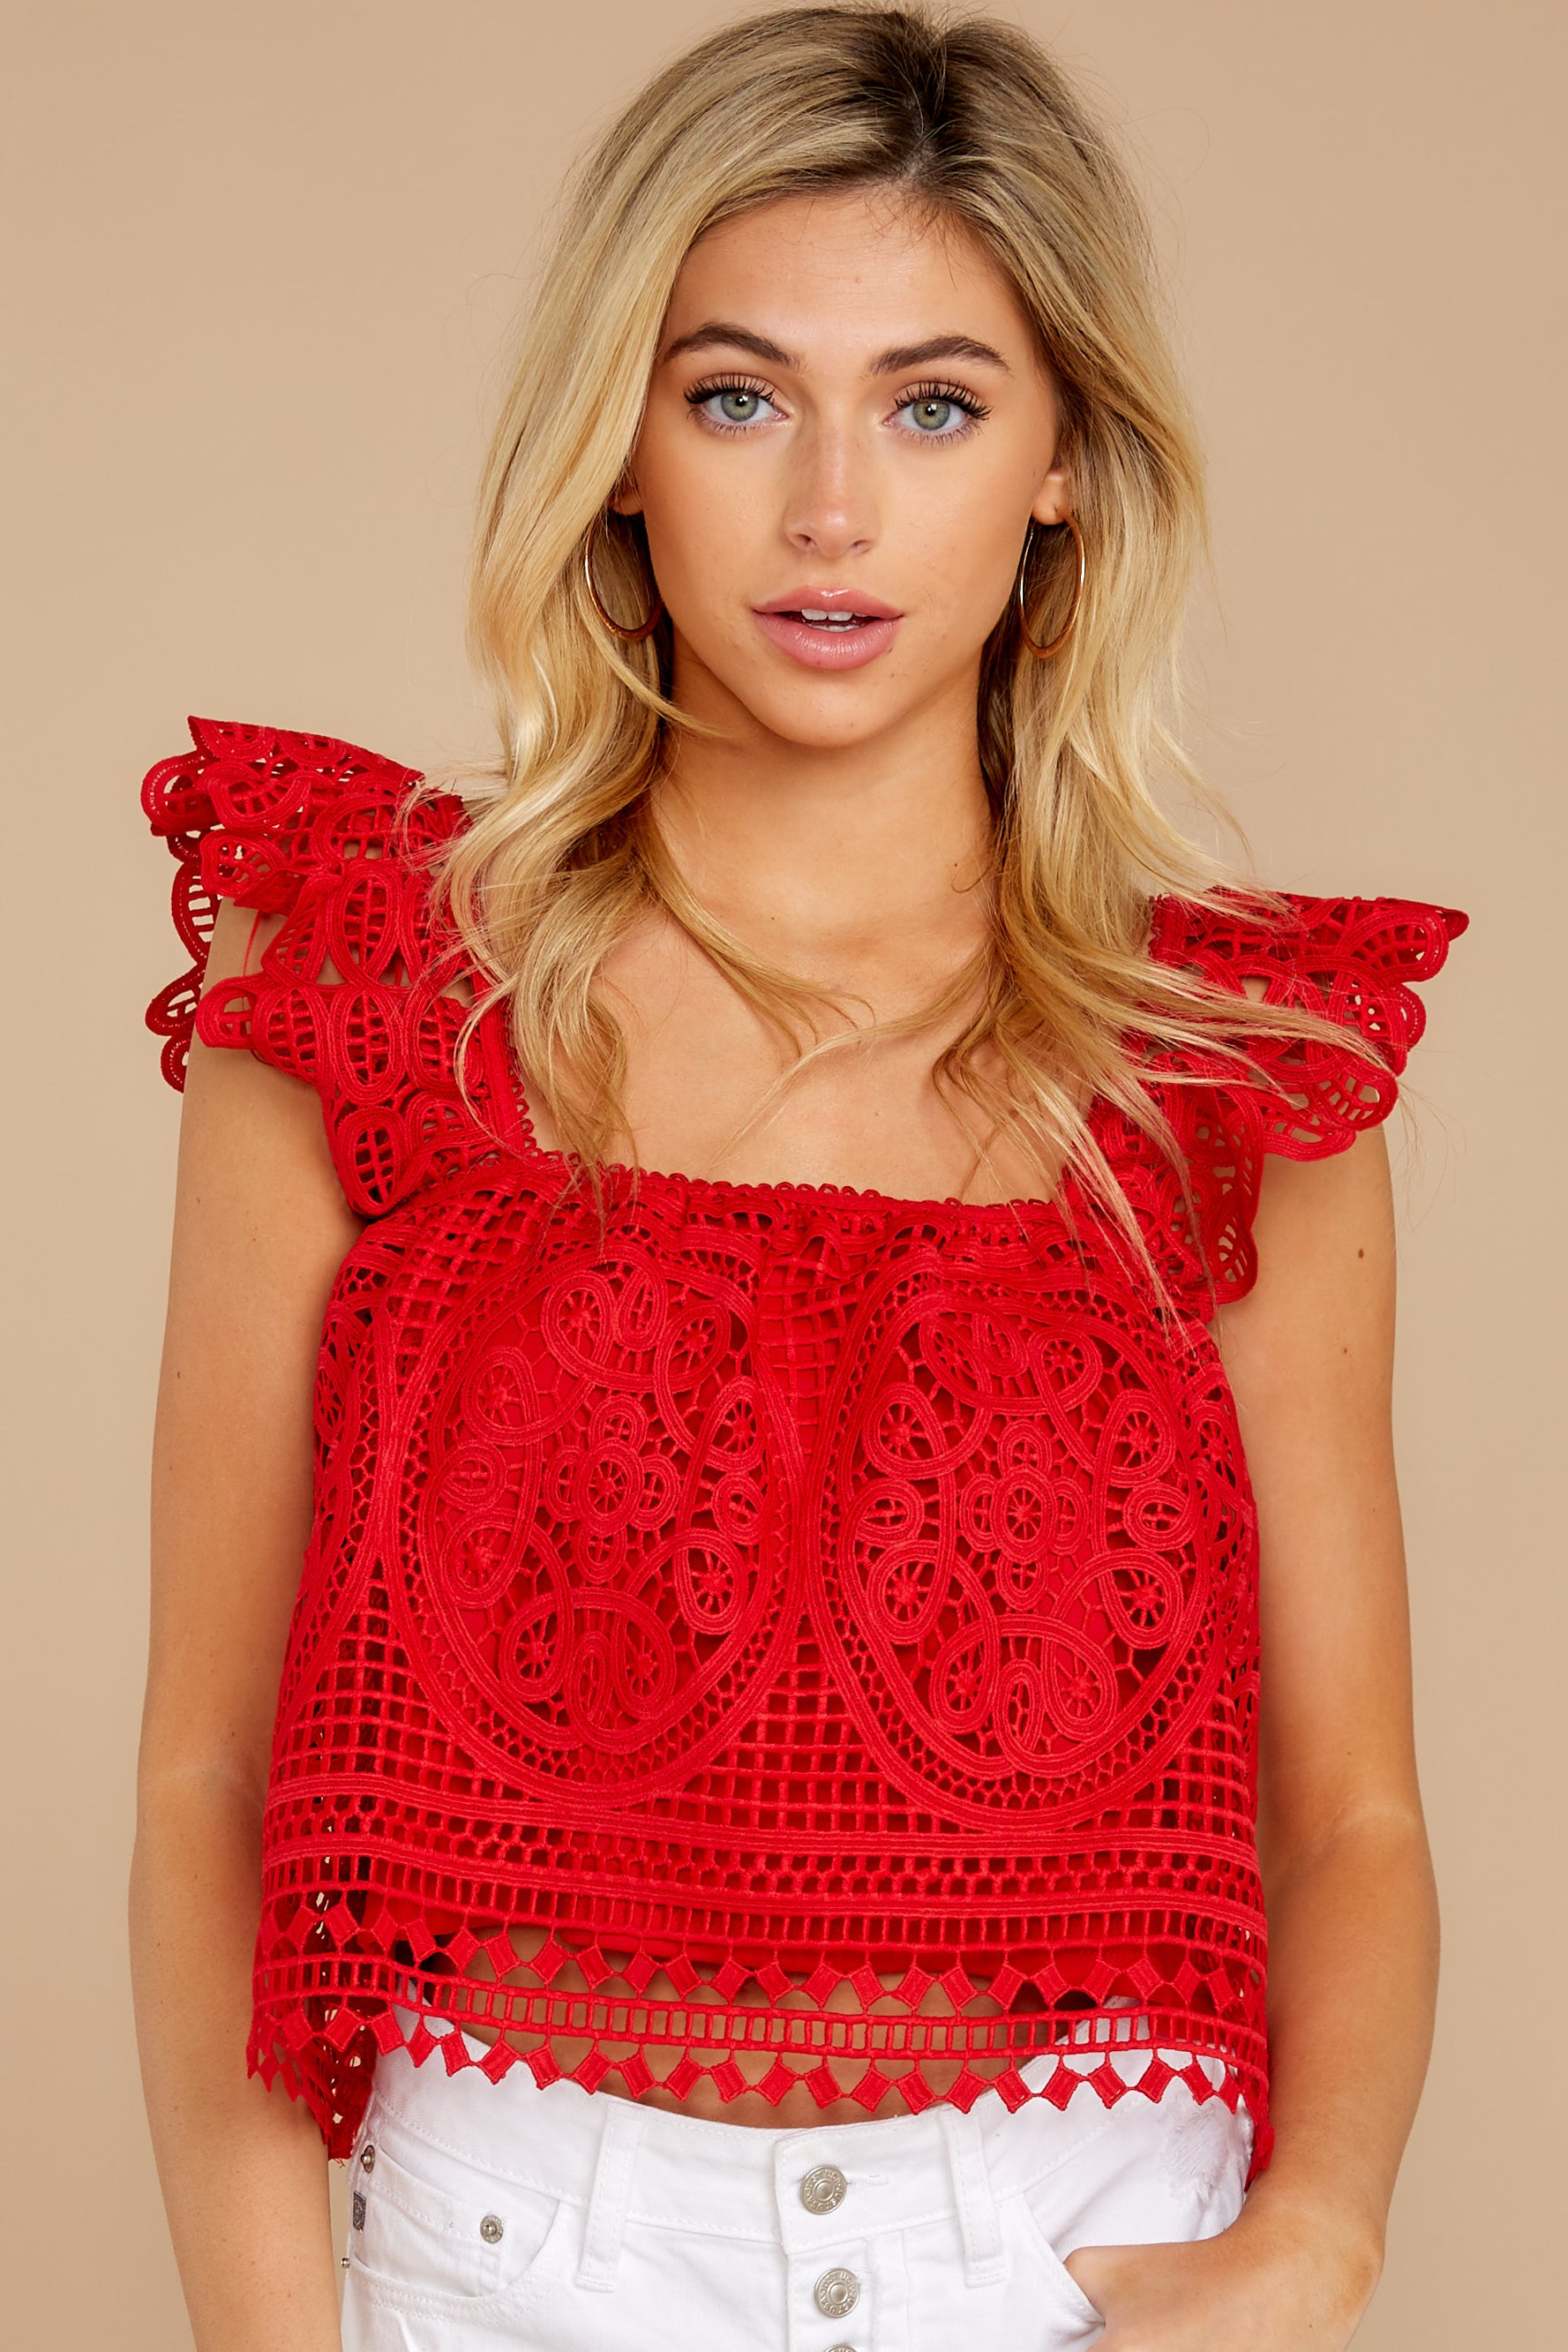 5 Right Time Right Place Red Lace Top at redressboutique.com